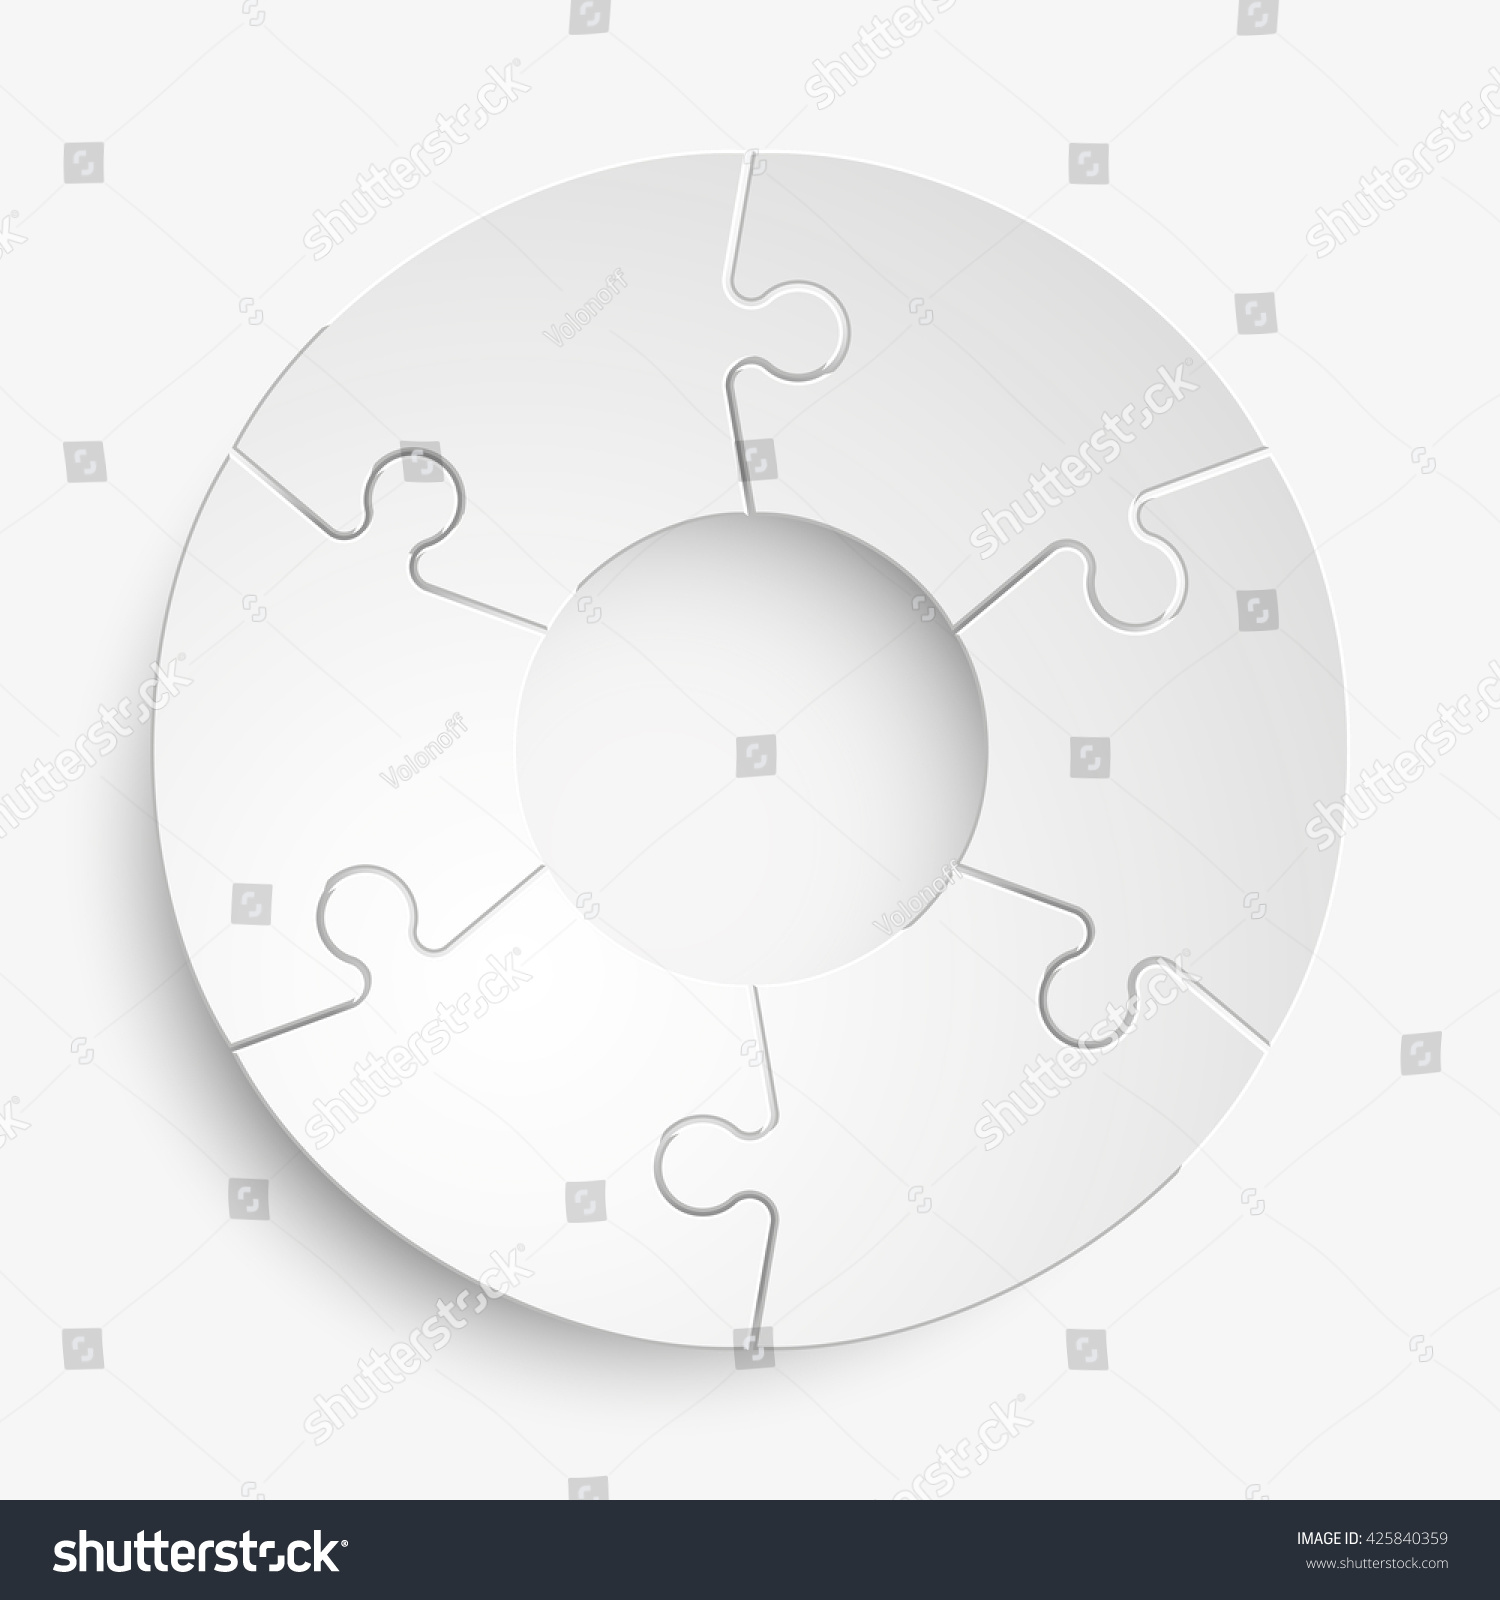 Six Piece Flat Puzzle Round Infographic Stock Vector 425840359 ...